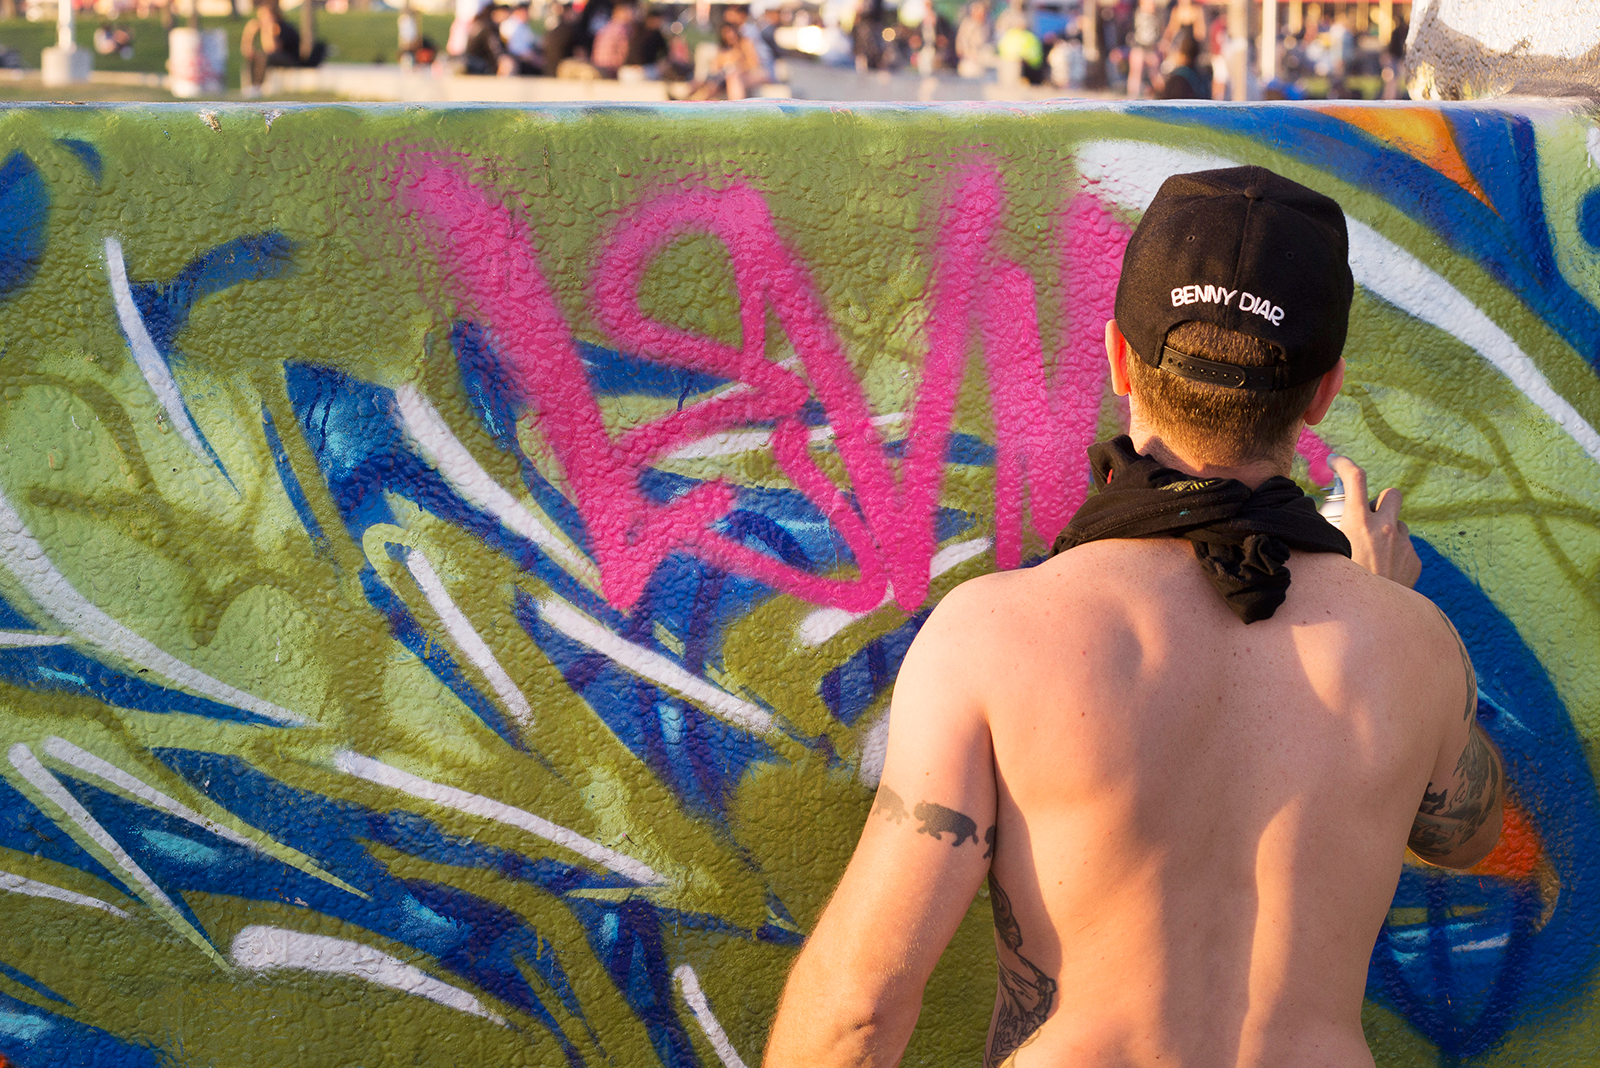 Travis, you are shirtless & also awesome XD! Here he is tagging their name on the wall!